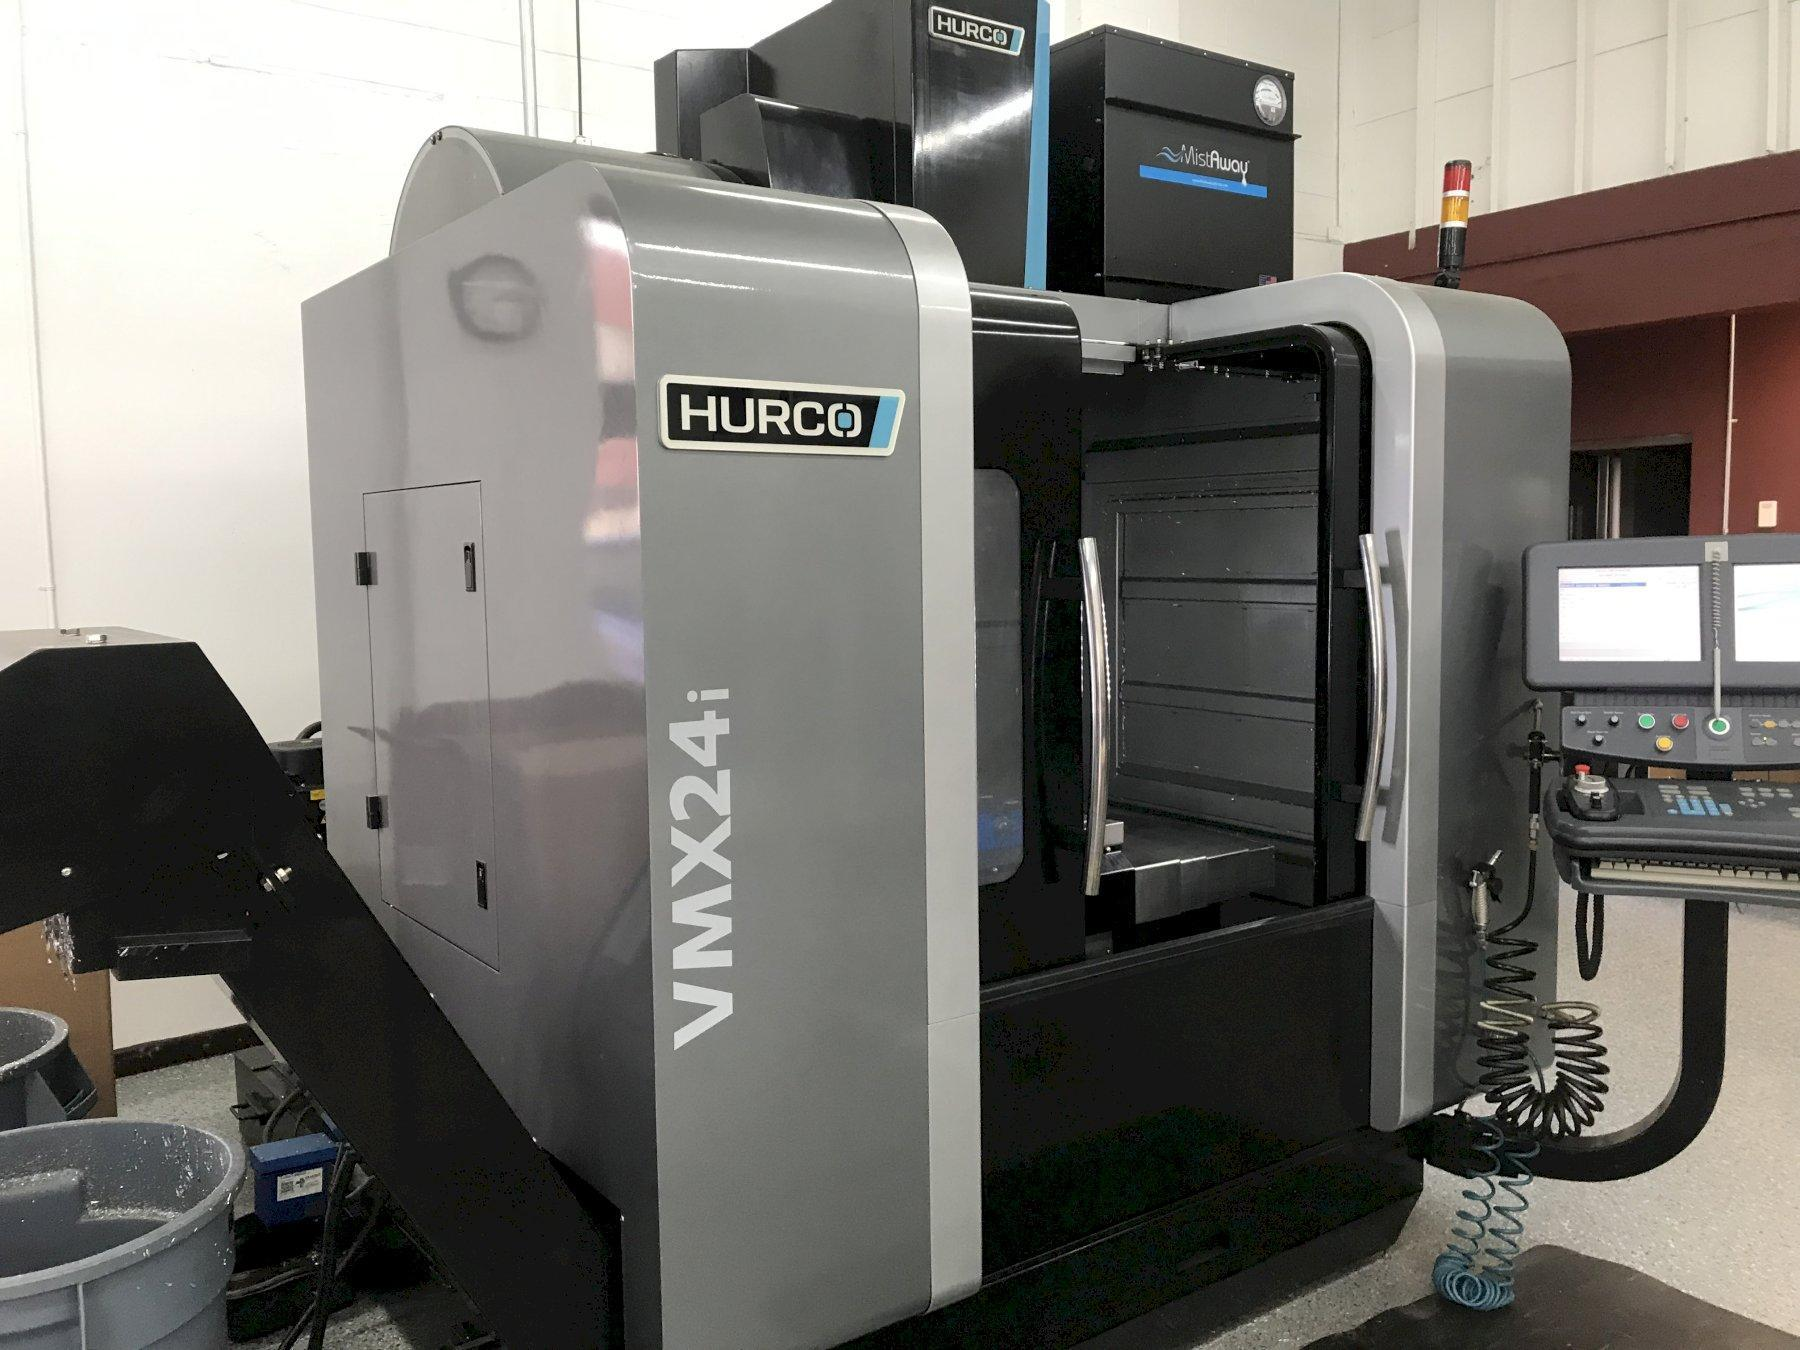 "Hurco VMX24i CNC Vertical Machining Center, Winmax, 24""/20""/24"" Travels, 12K Spinlde, CTS, 24 ATC, Chiller, Many Hurco Control Options, Low Hours, 2013"